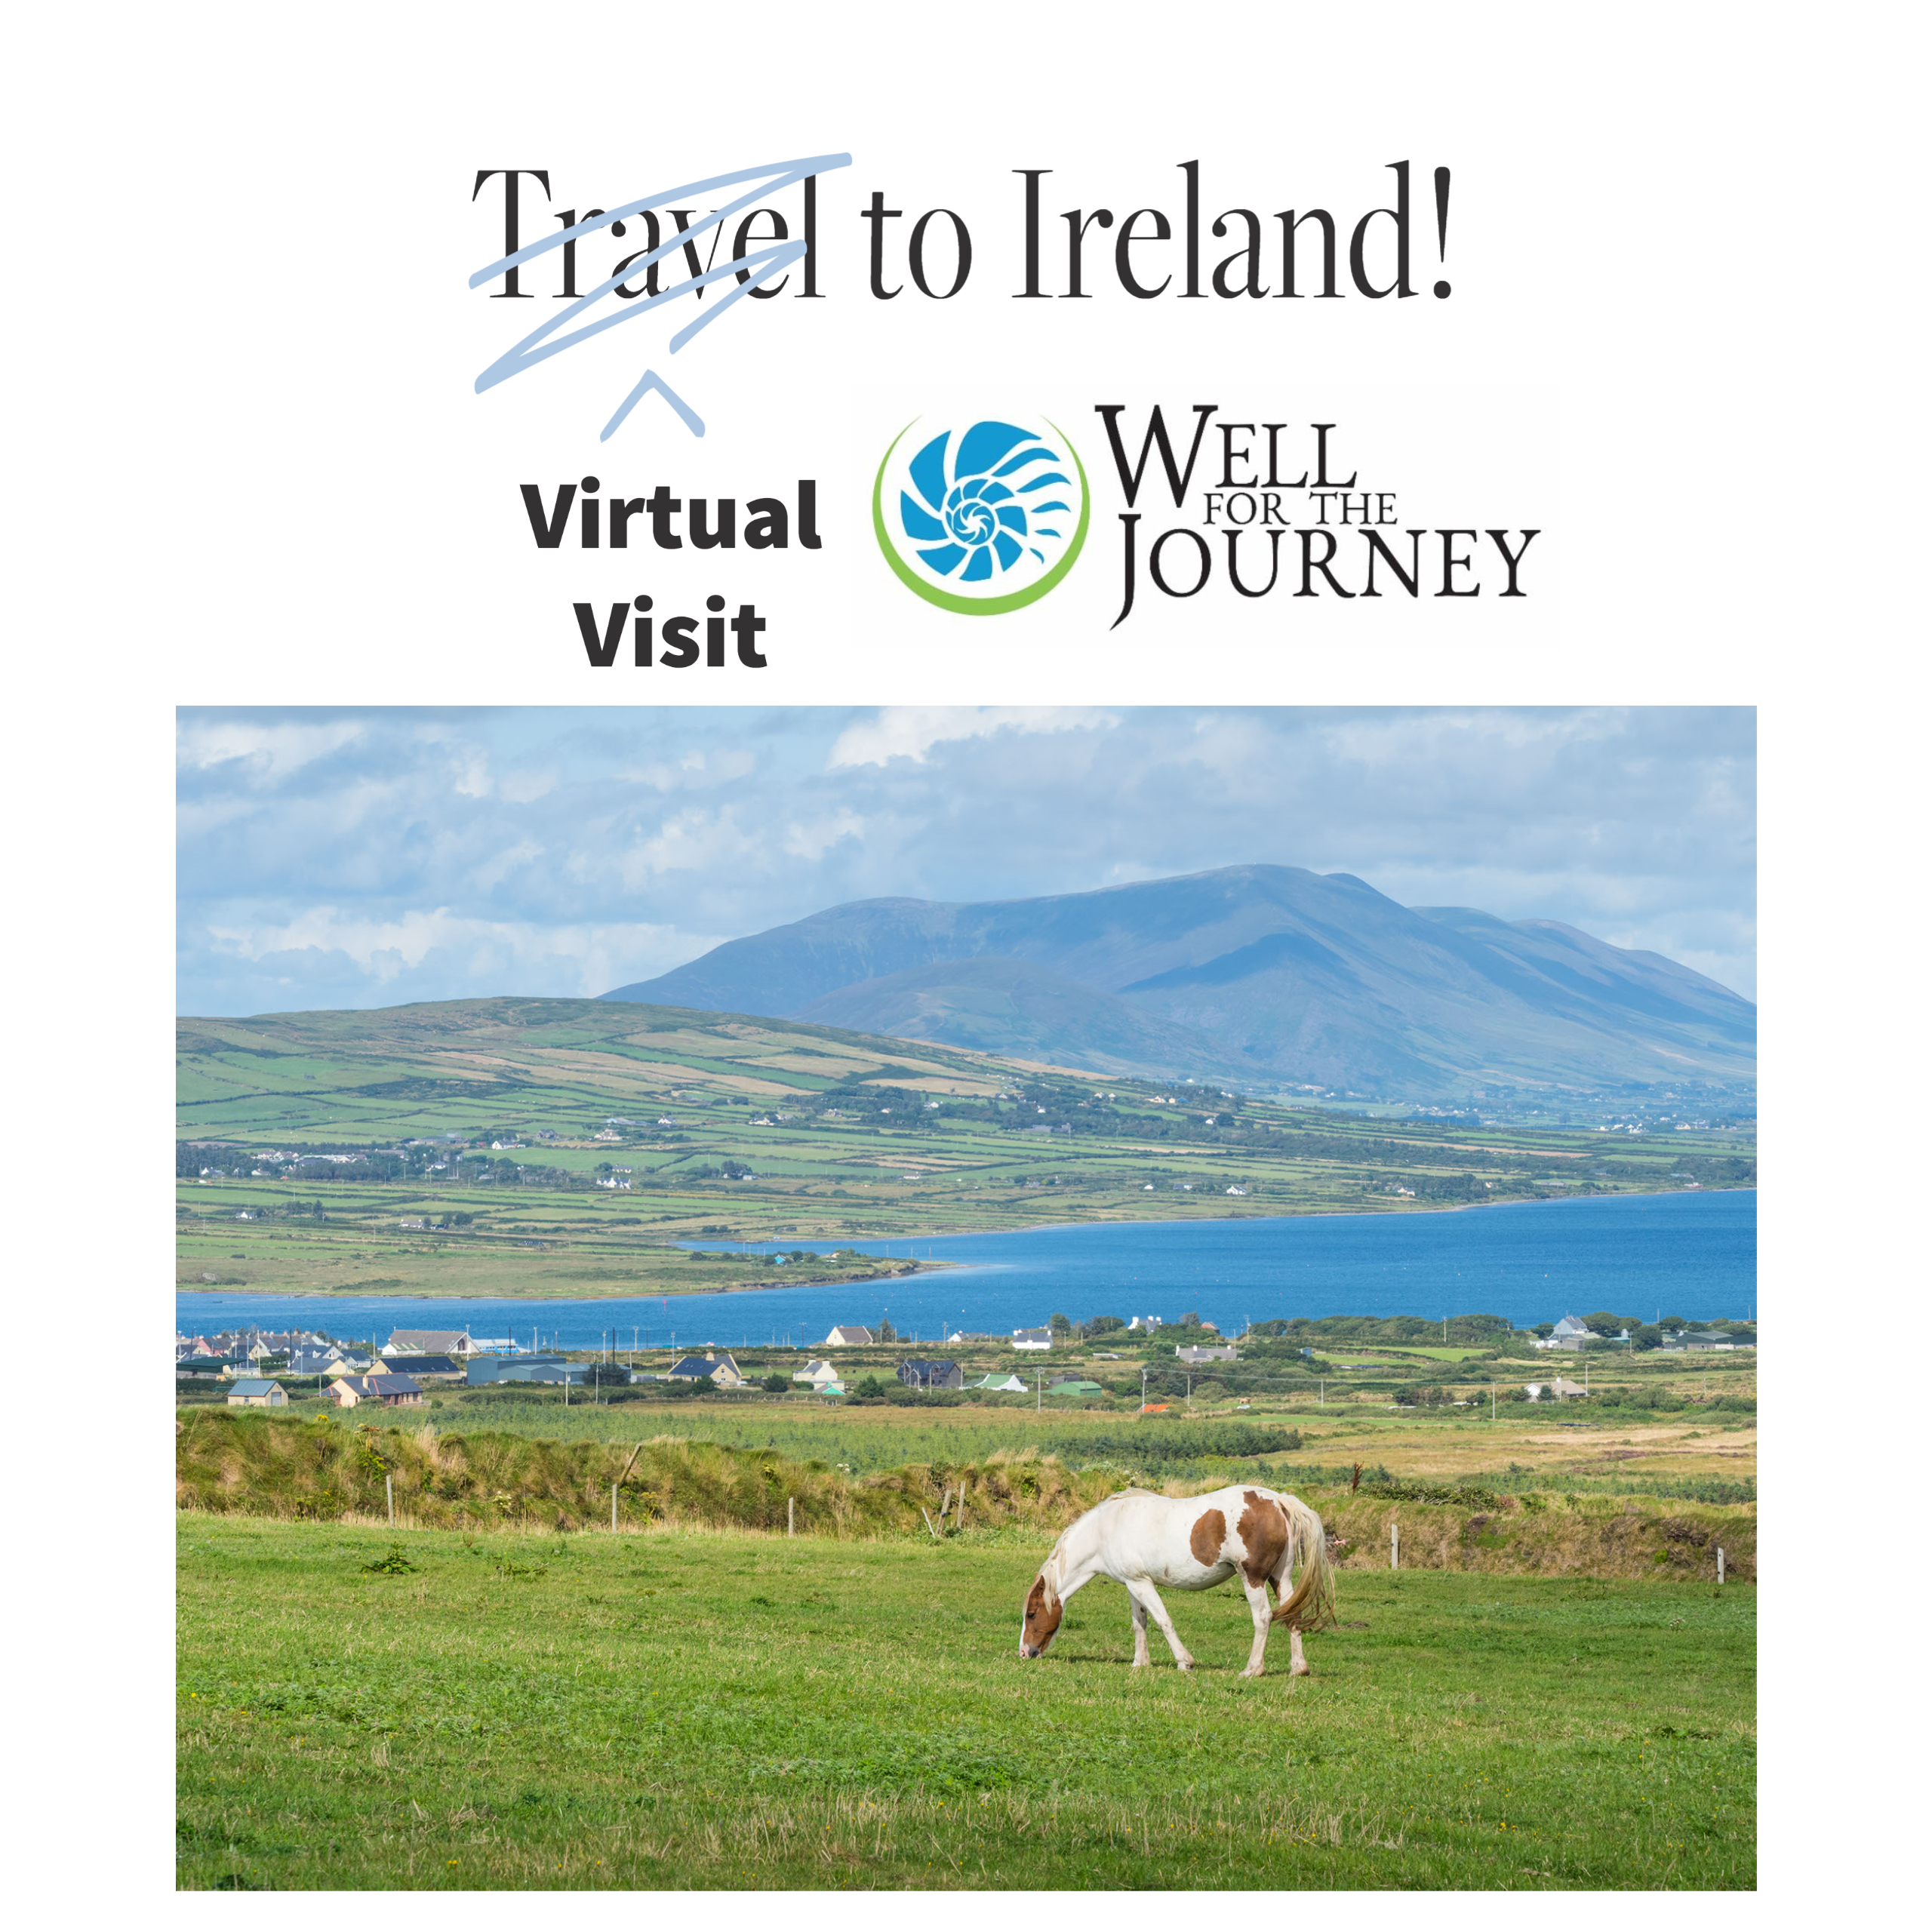 virtual visit ireland well for the journey